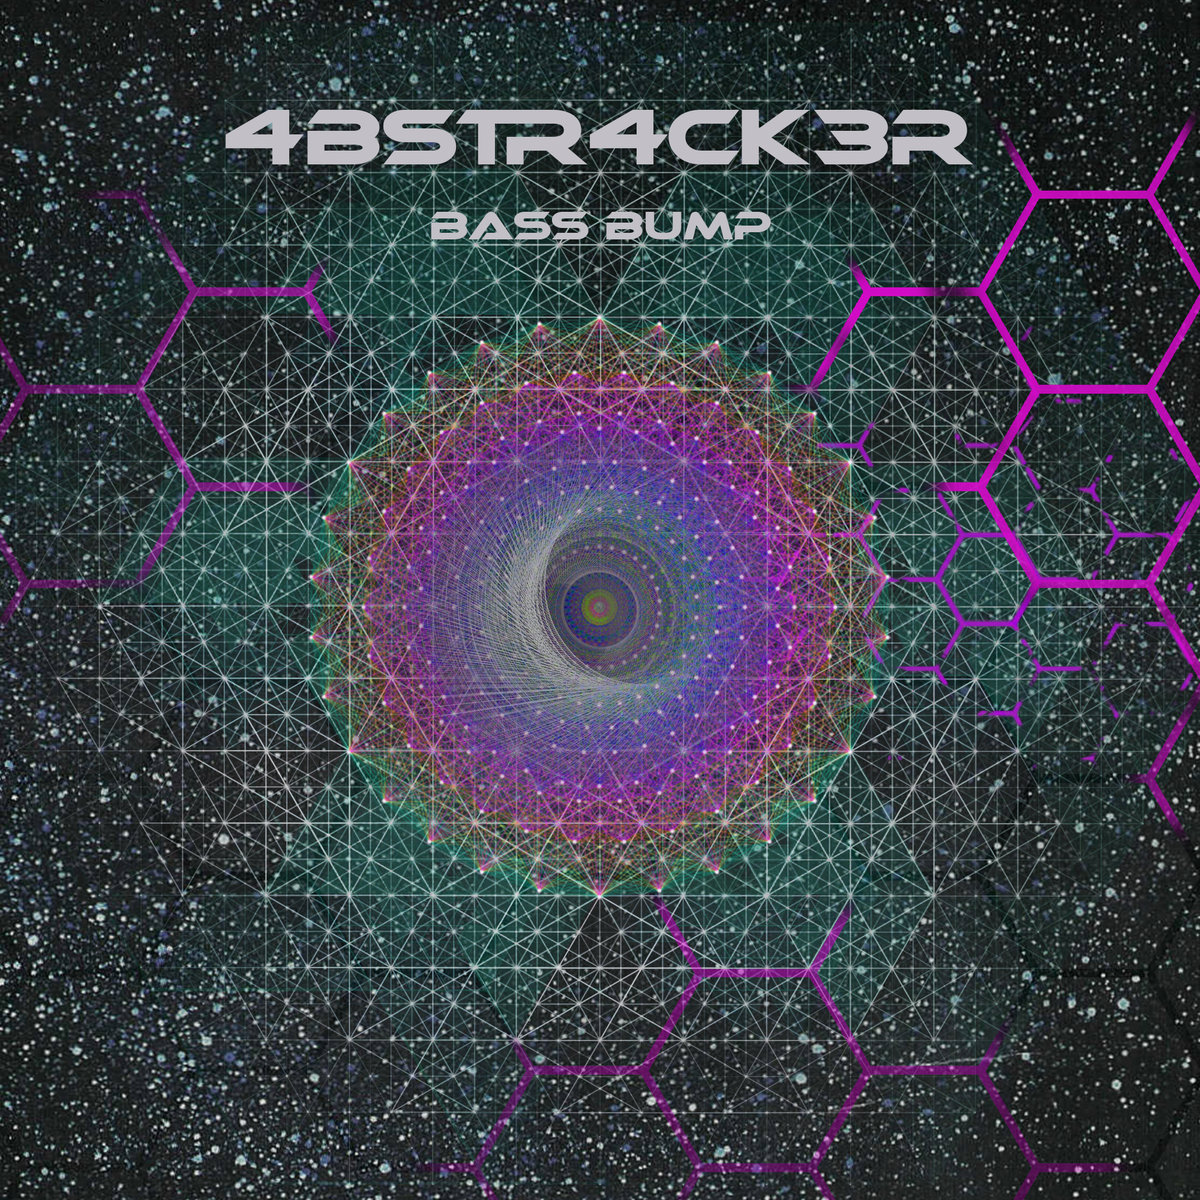 4bstr4ck3r - Bass Bump @ 'Bass Bump' album (bass, electronic)